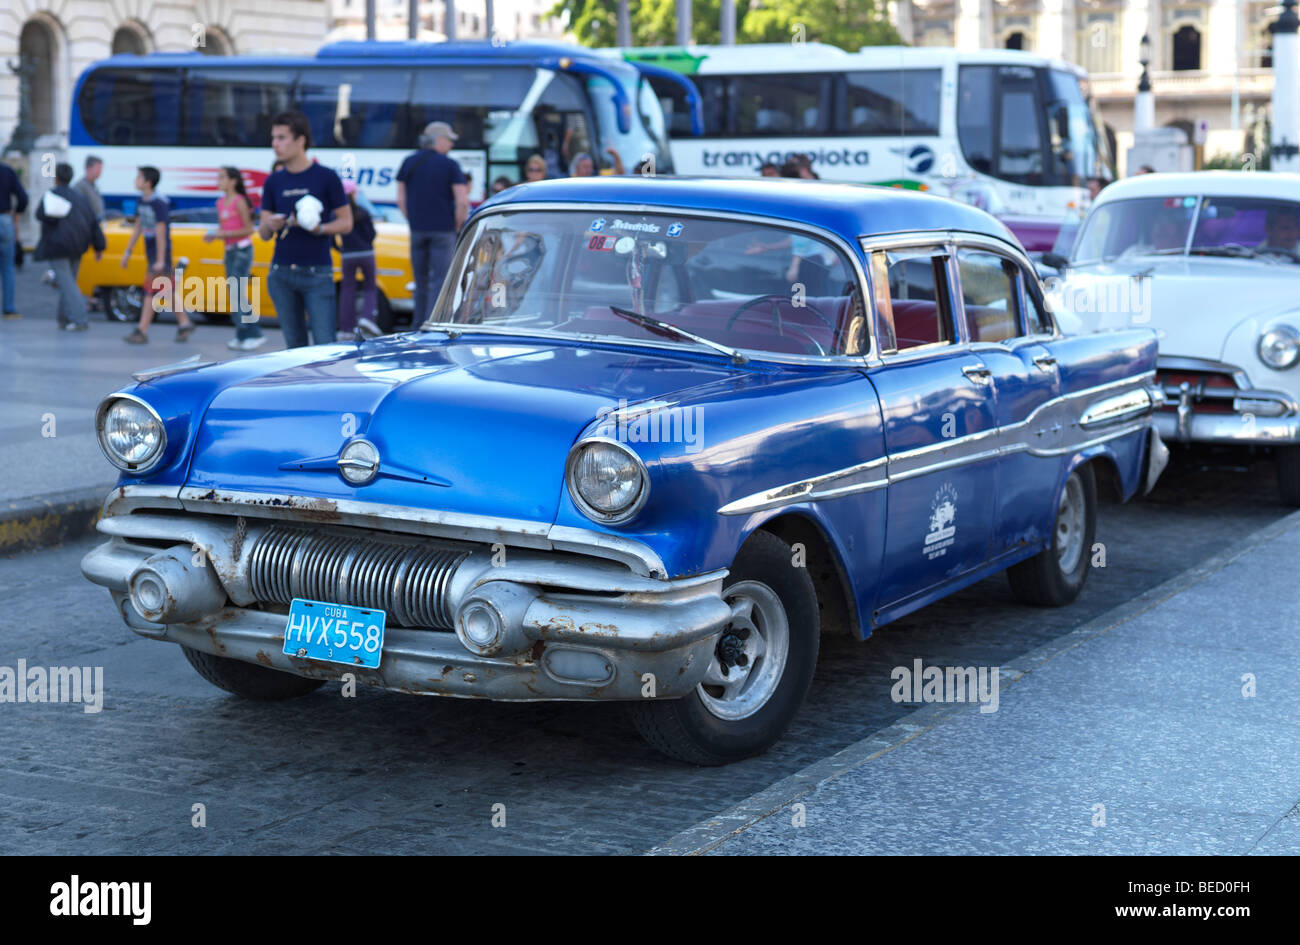 A historic blue american car / oldtimer in the streets of Havanna, Cuba, pictured on March 1, 2009. - Stock Image